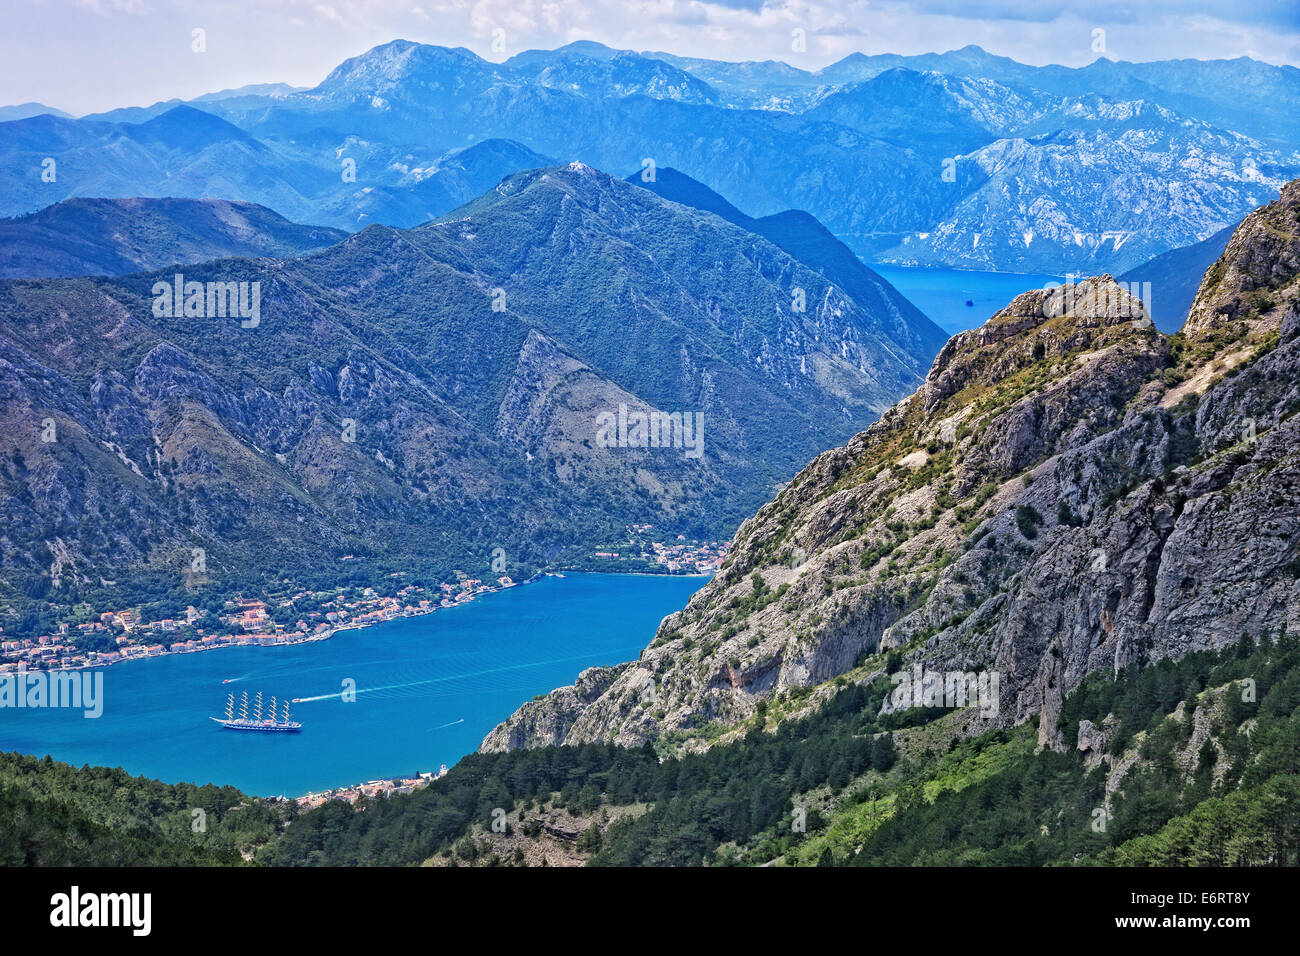 Top view of the Bay of Kotor panorama, Montenegro. Stock Photo